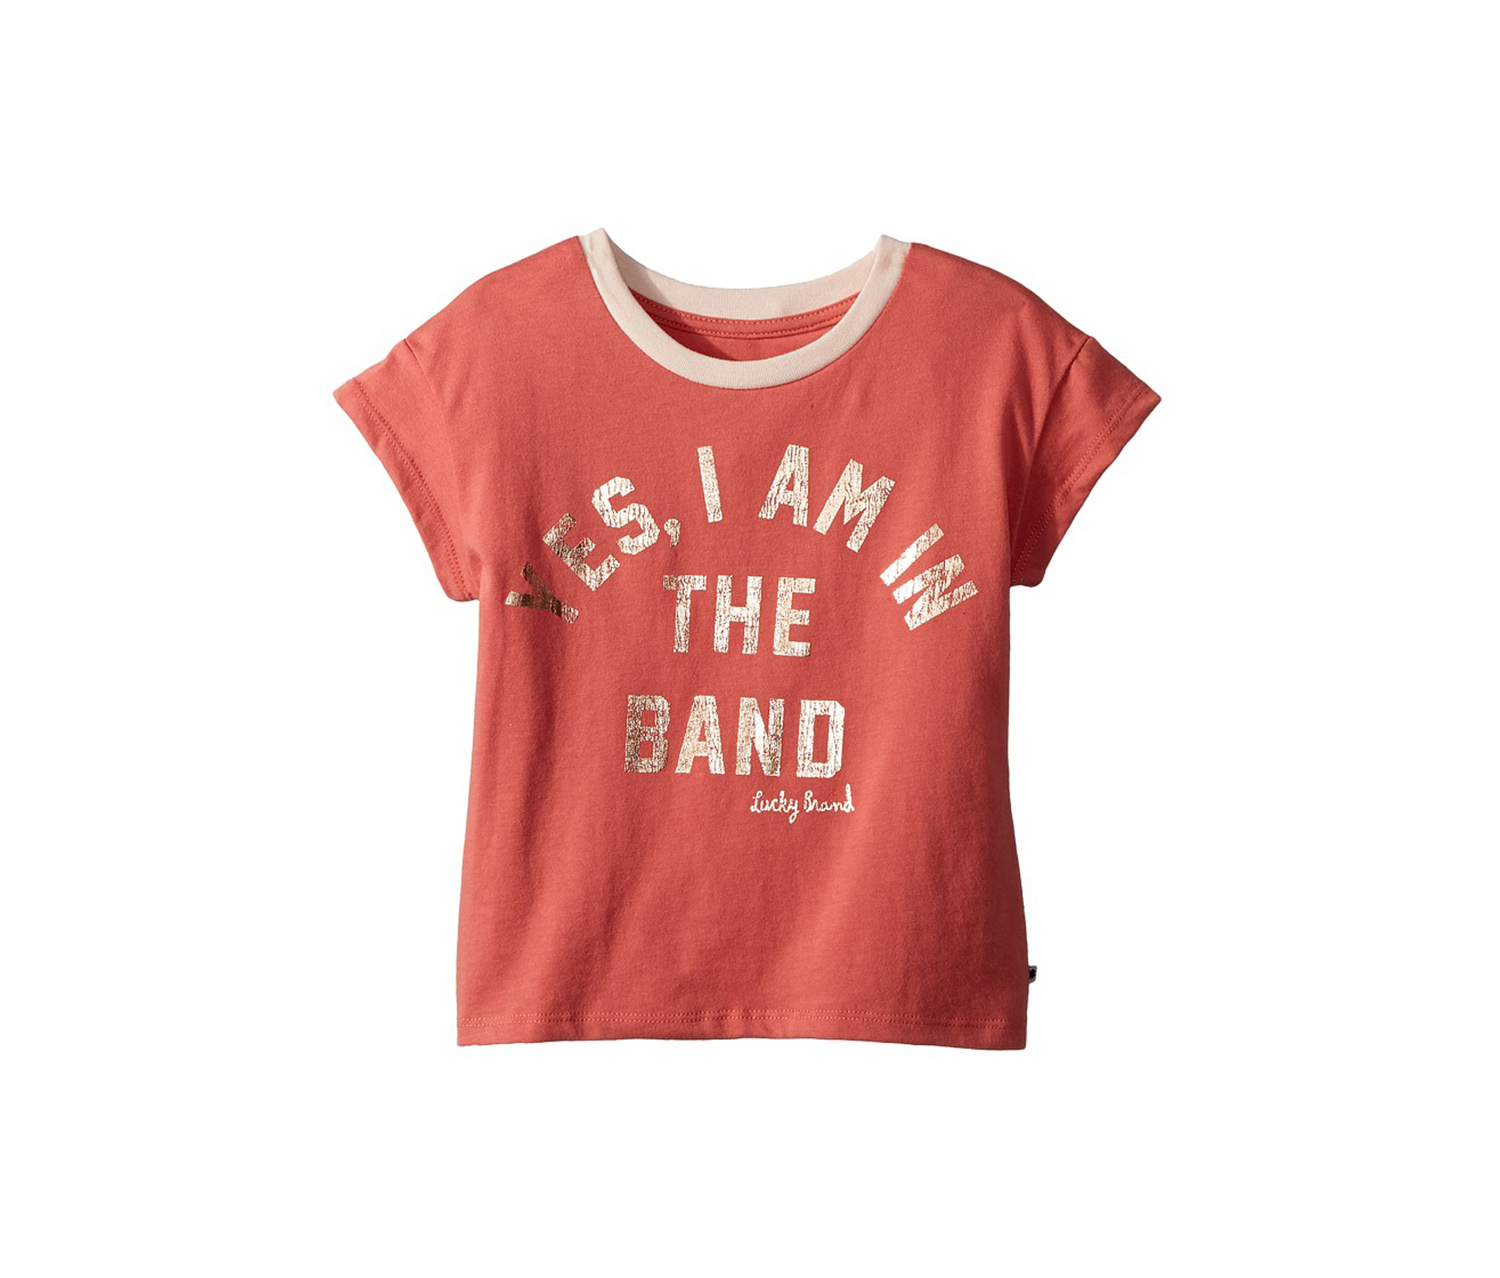 Girl's Paola Tee, Faded Pink